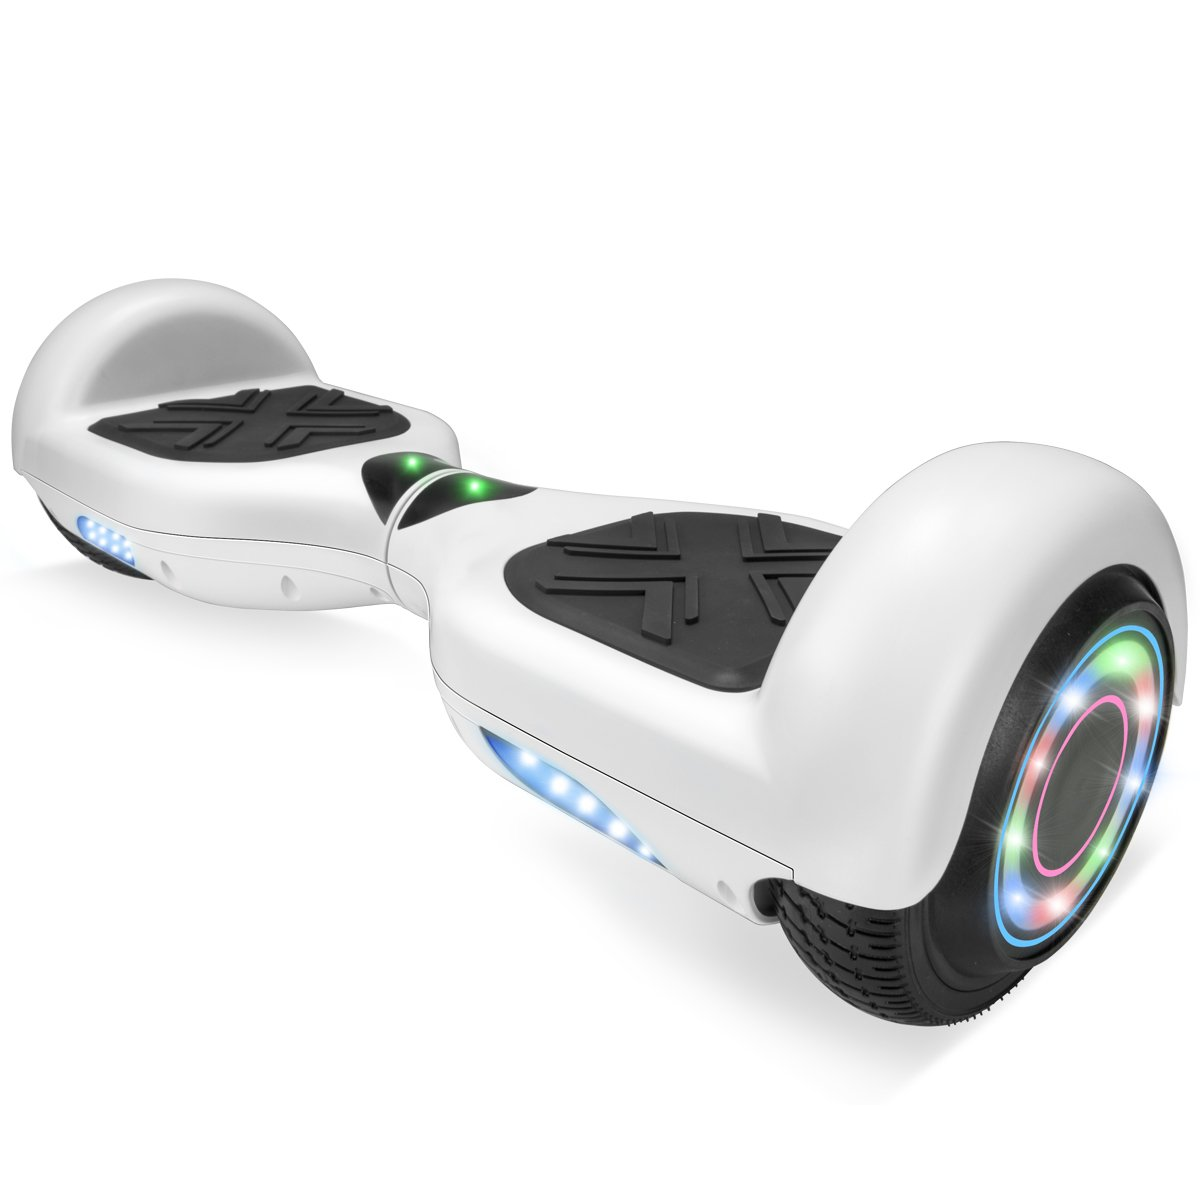 XtremepowerUS 6.5'' Self Balancing Hoverboard Scooter w/ Bluetooth Speaker (Matte White) by XtremepowerUS